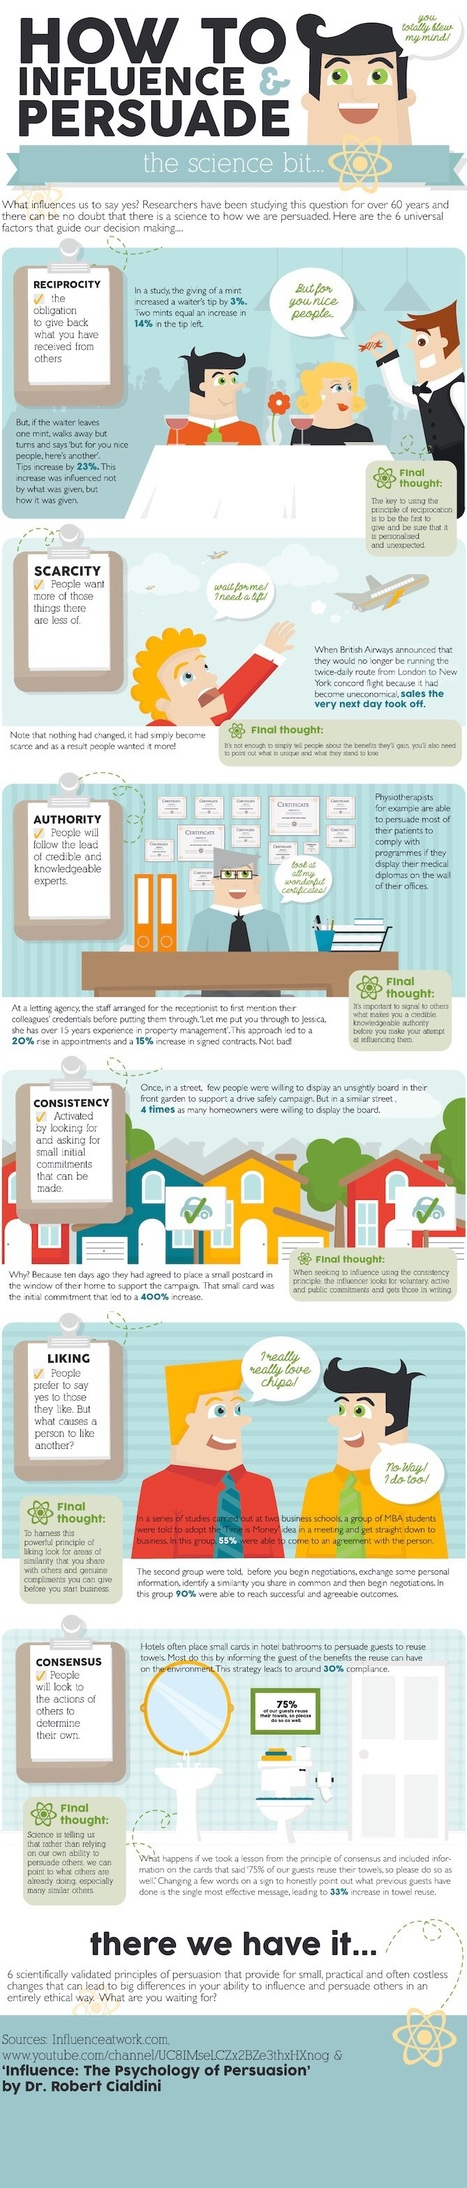 The Science of Persuasion #Infographic | Marketing Ideas & Tips | Scoop.it